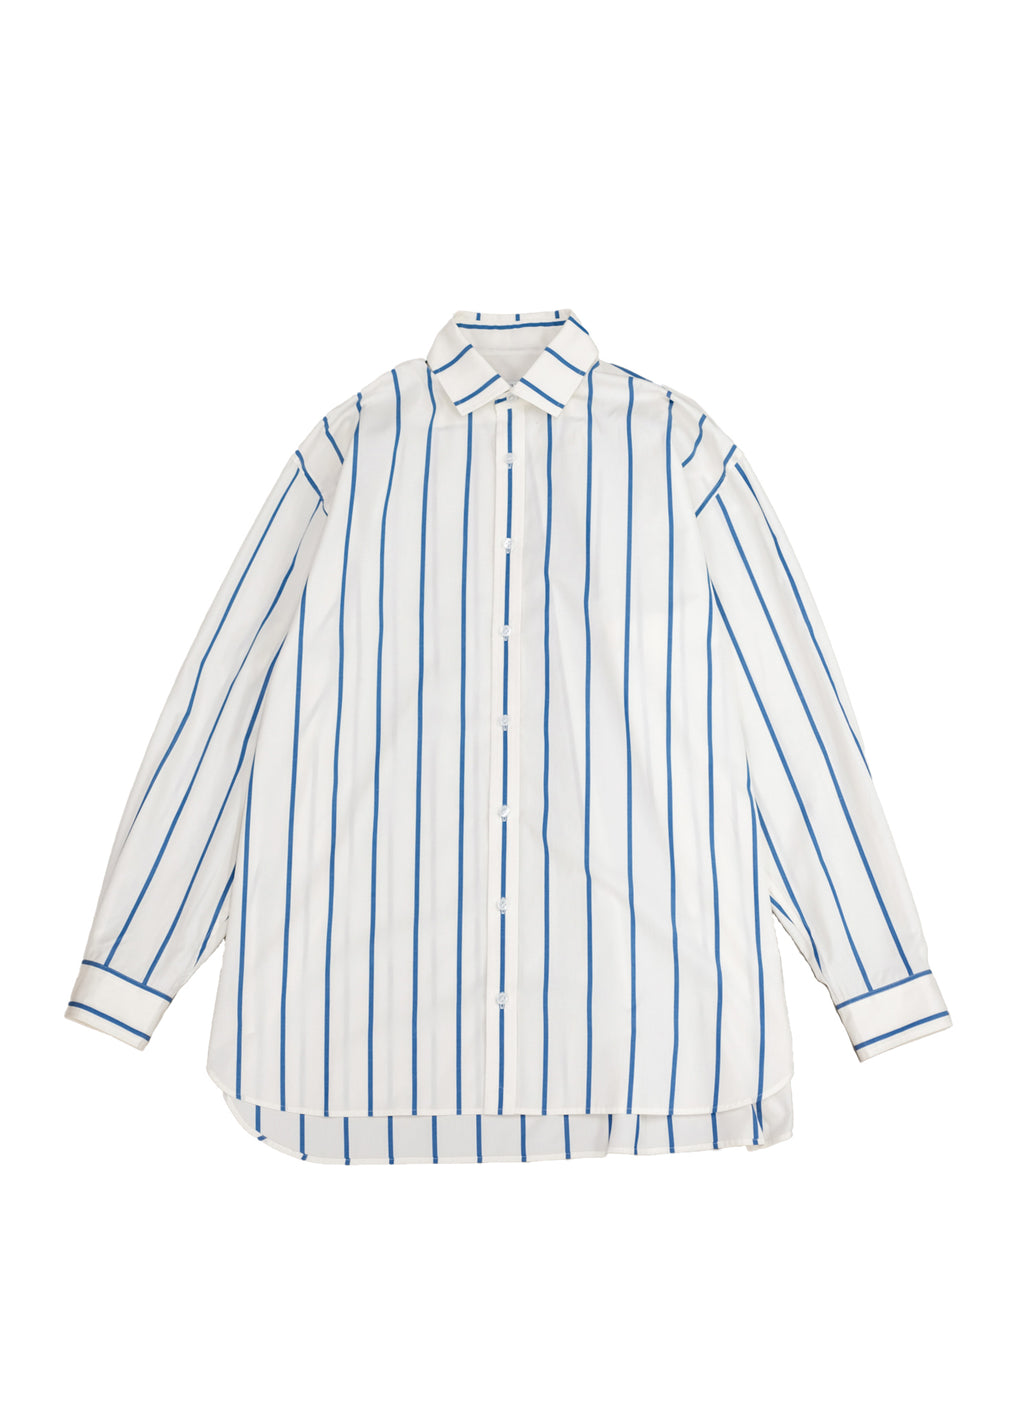 WILLY CHAVARRIA / BIG WILLY DRESS SHIRT STRIPE OFF WHITE